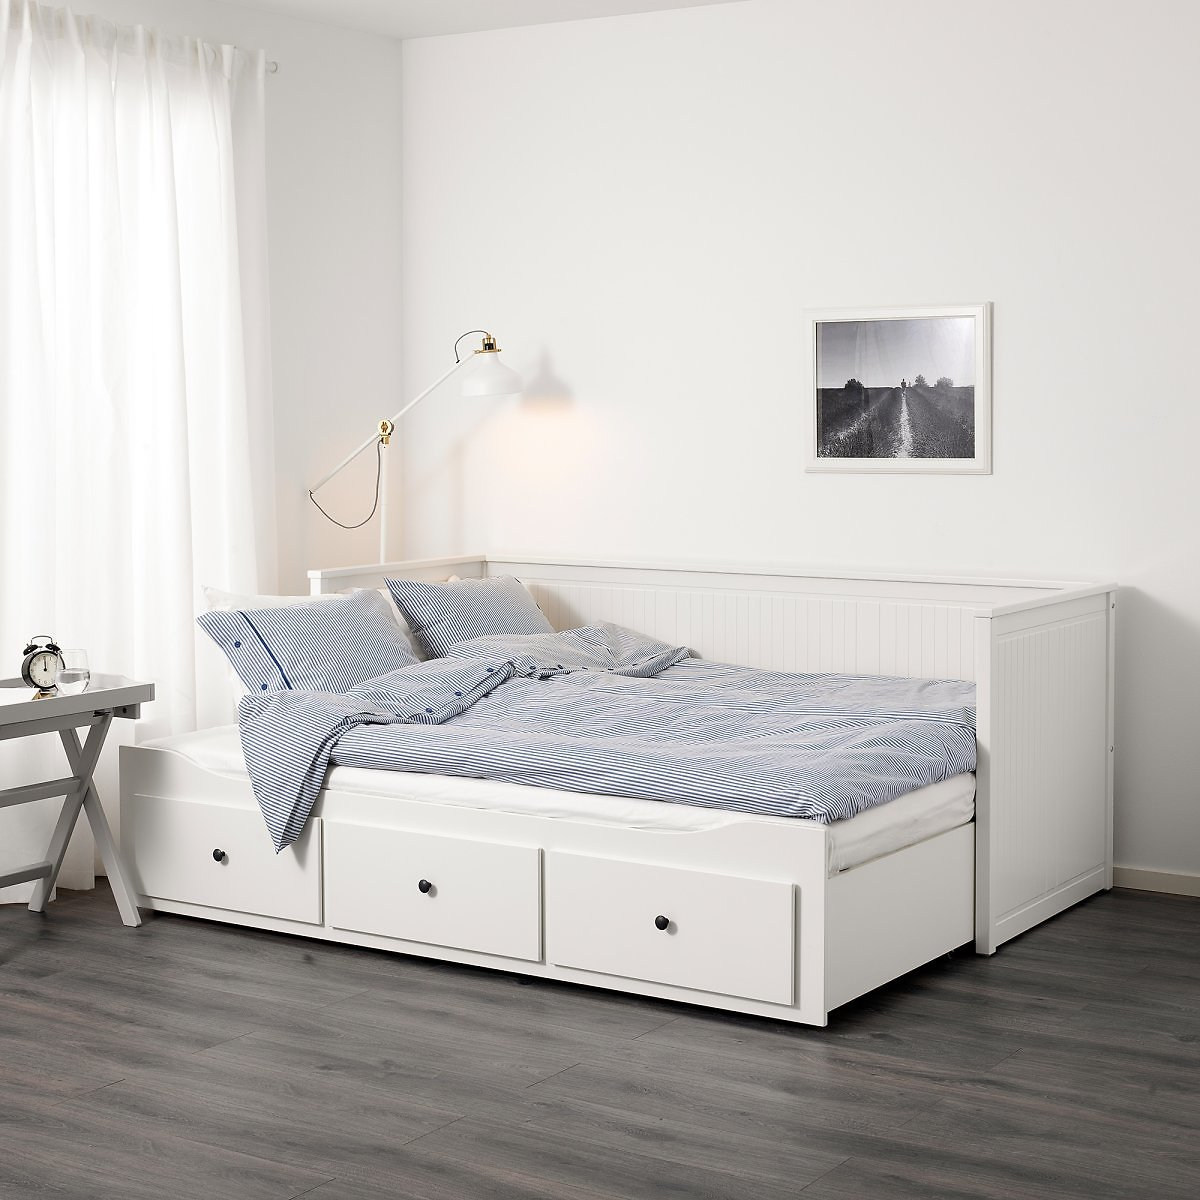 HEMNES Daybed Frame with 3 Drawers, WhiteTwin